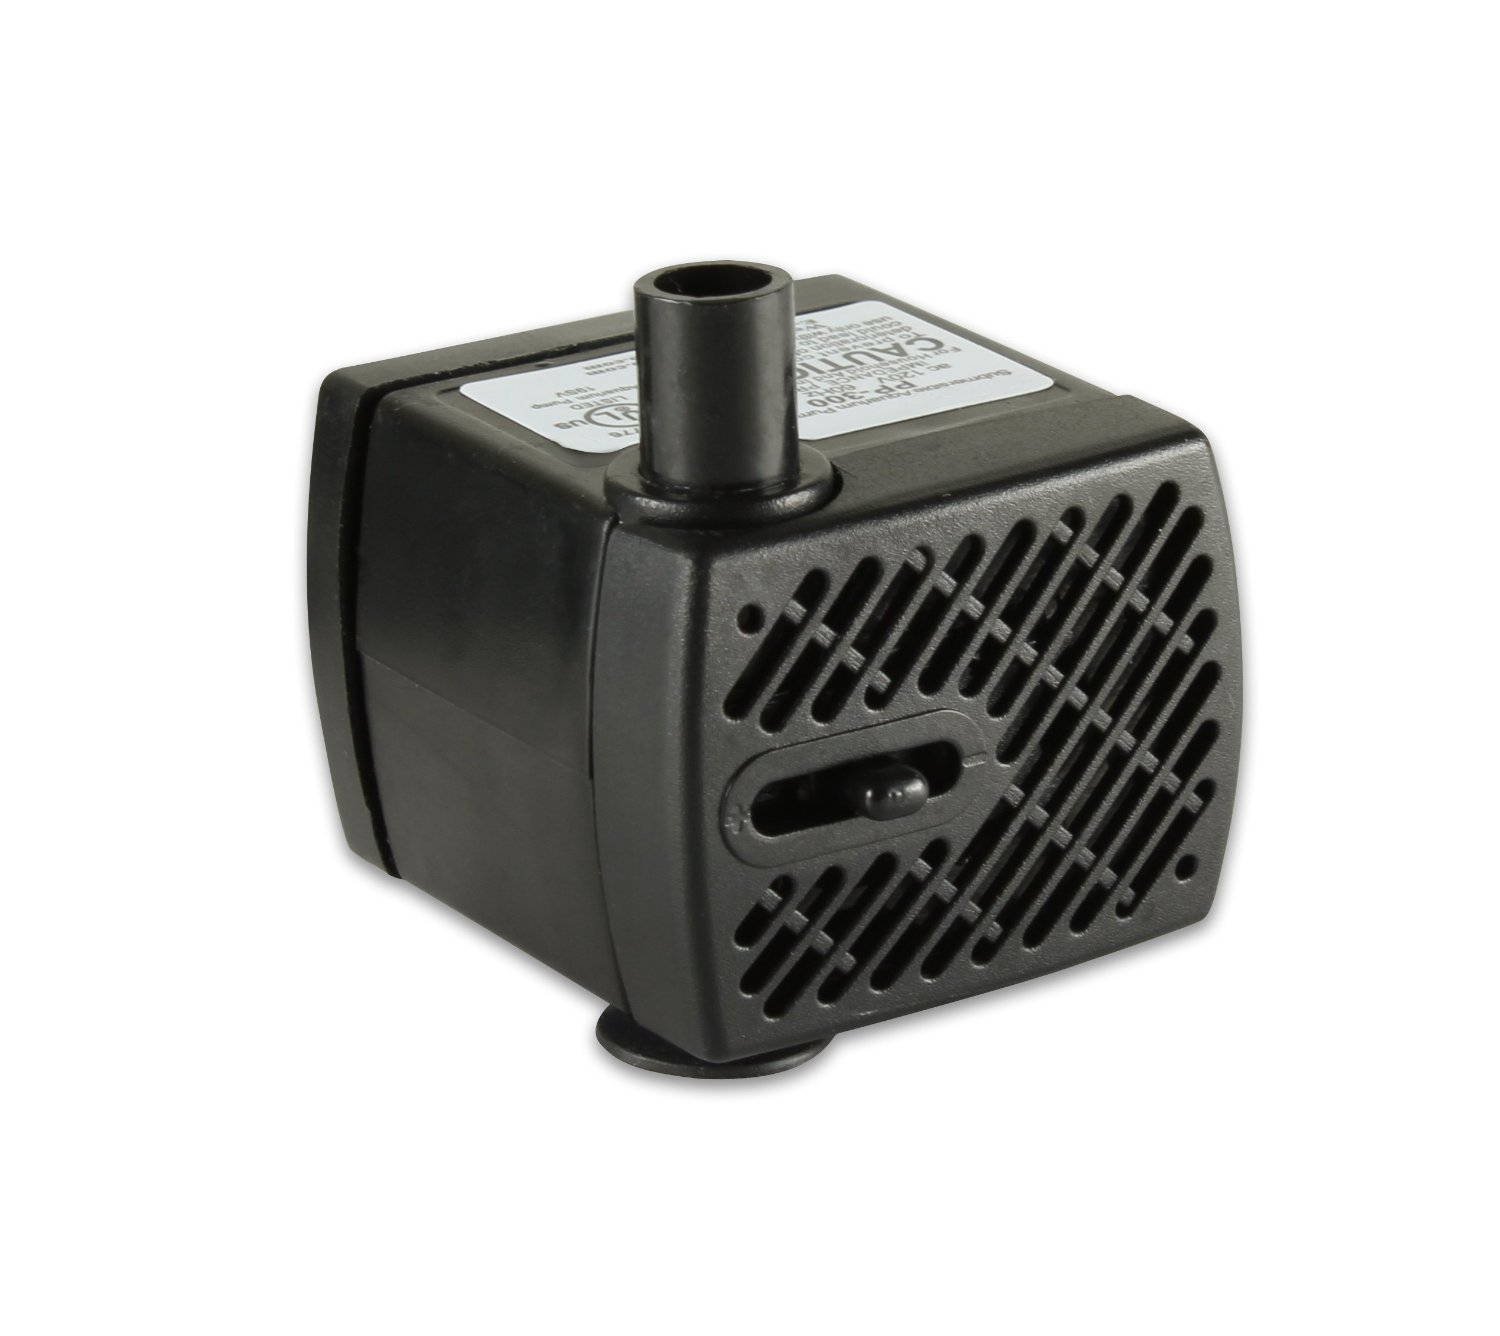 Ap 300lv Submersible Water Pump With 13cm 12v Output Led